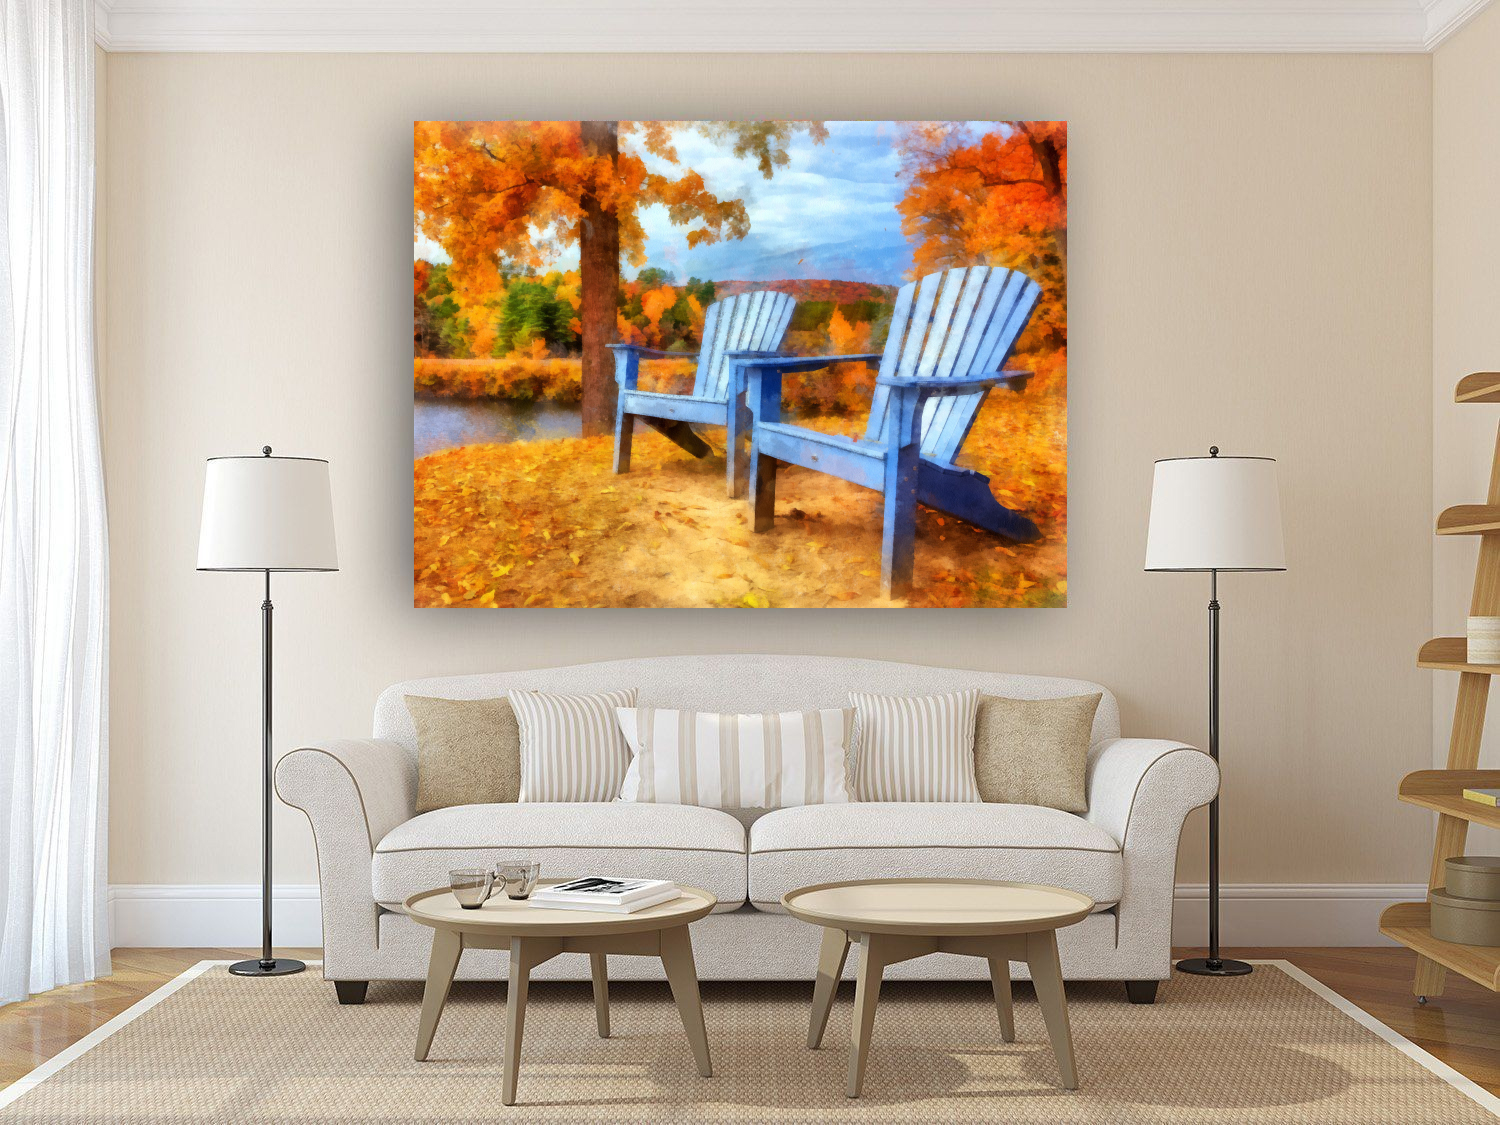 Amazing artwork for your home!